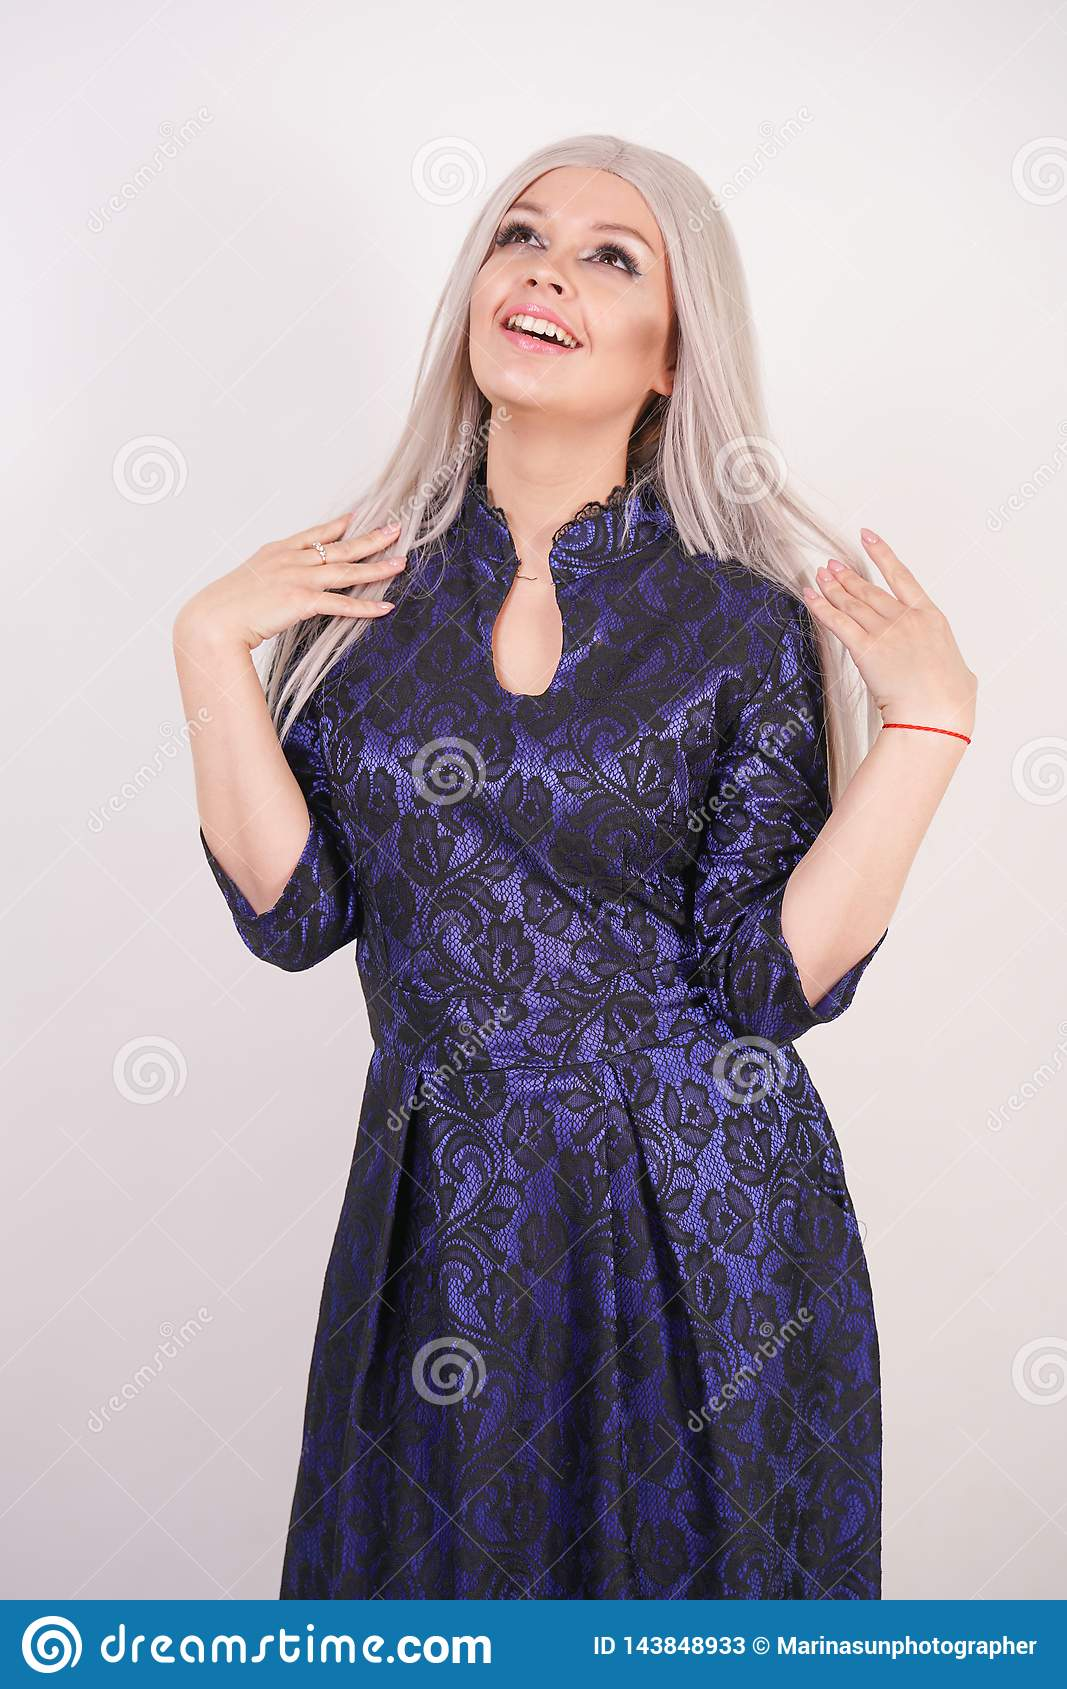 Beautiful blonde girl in luxurious blue with black lace evening dress on white background in Studio